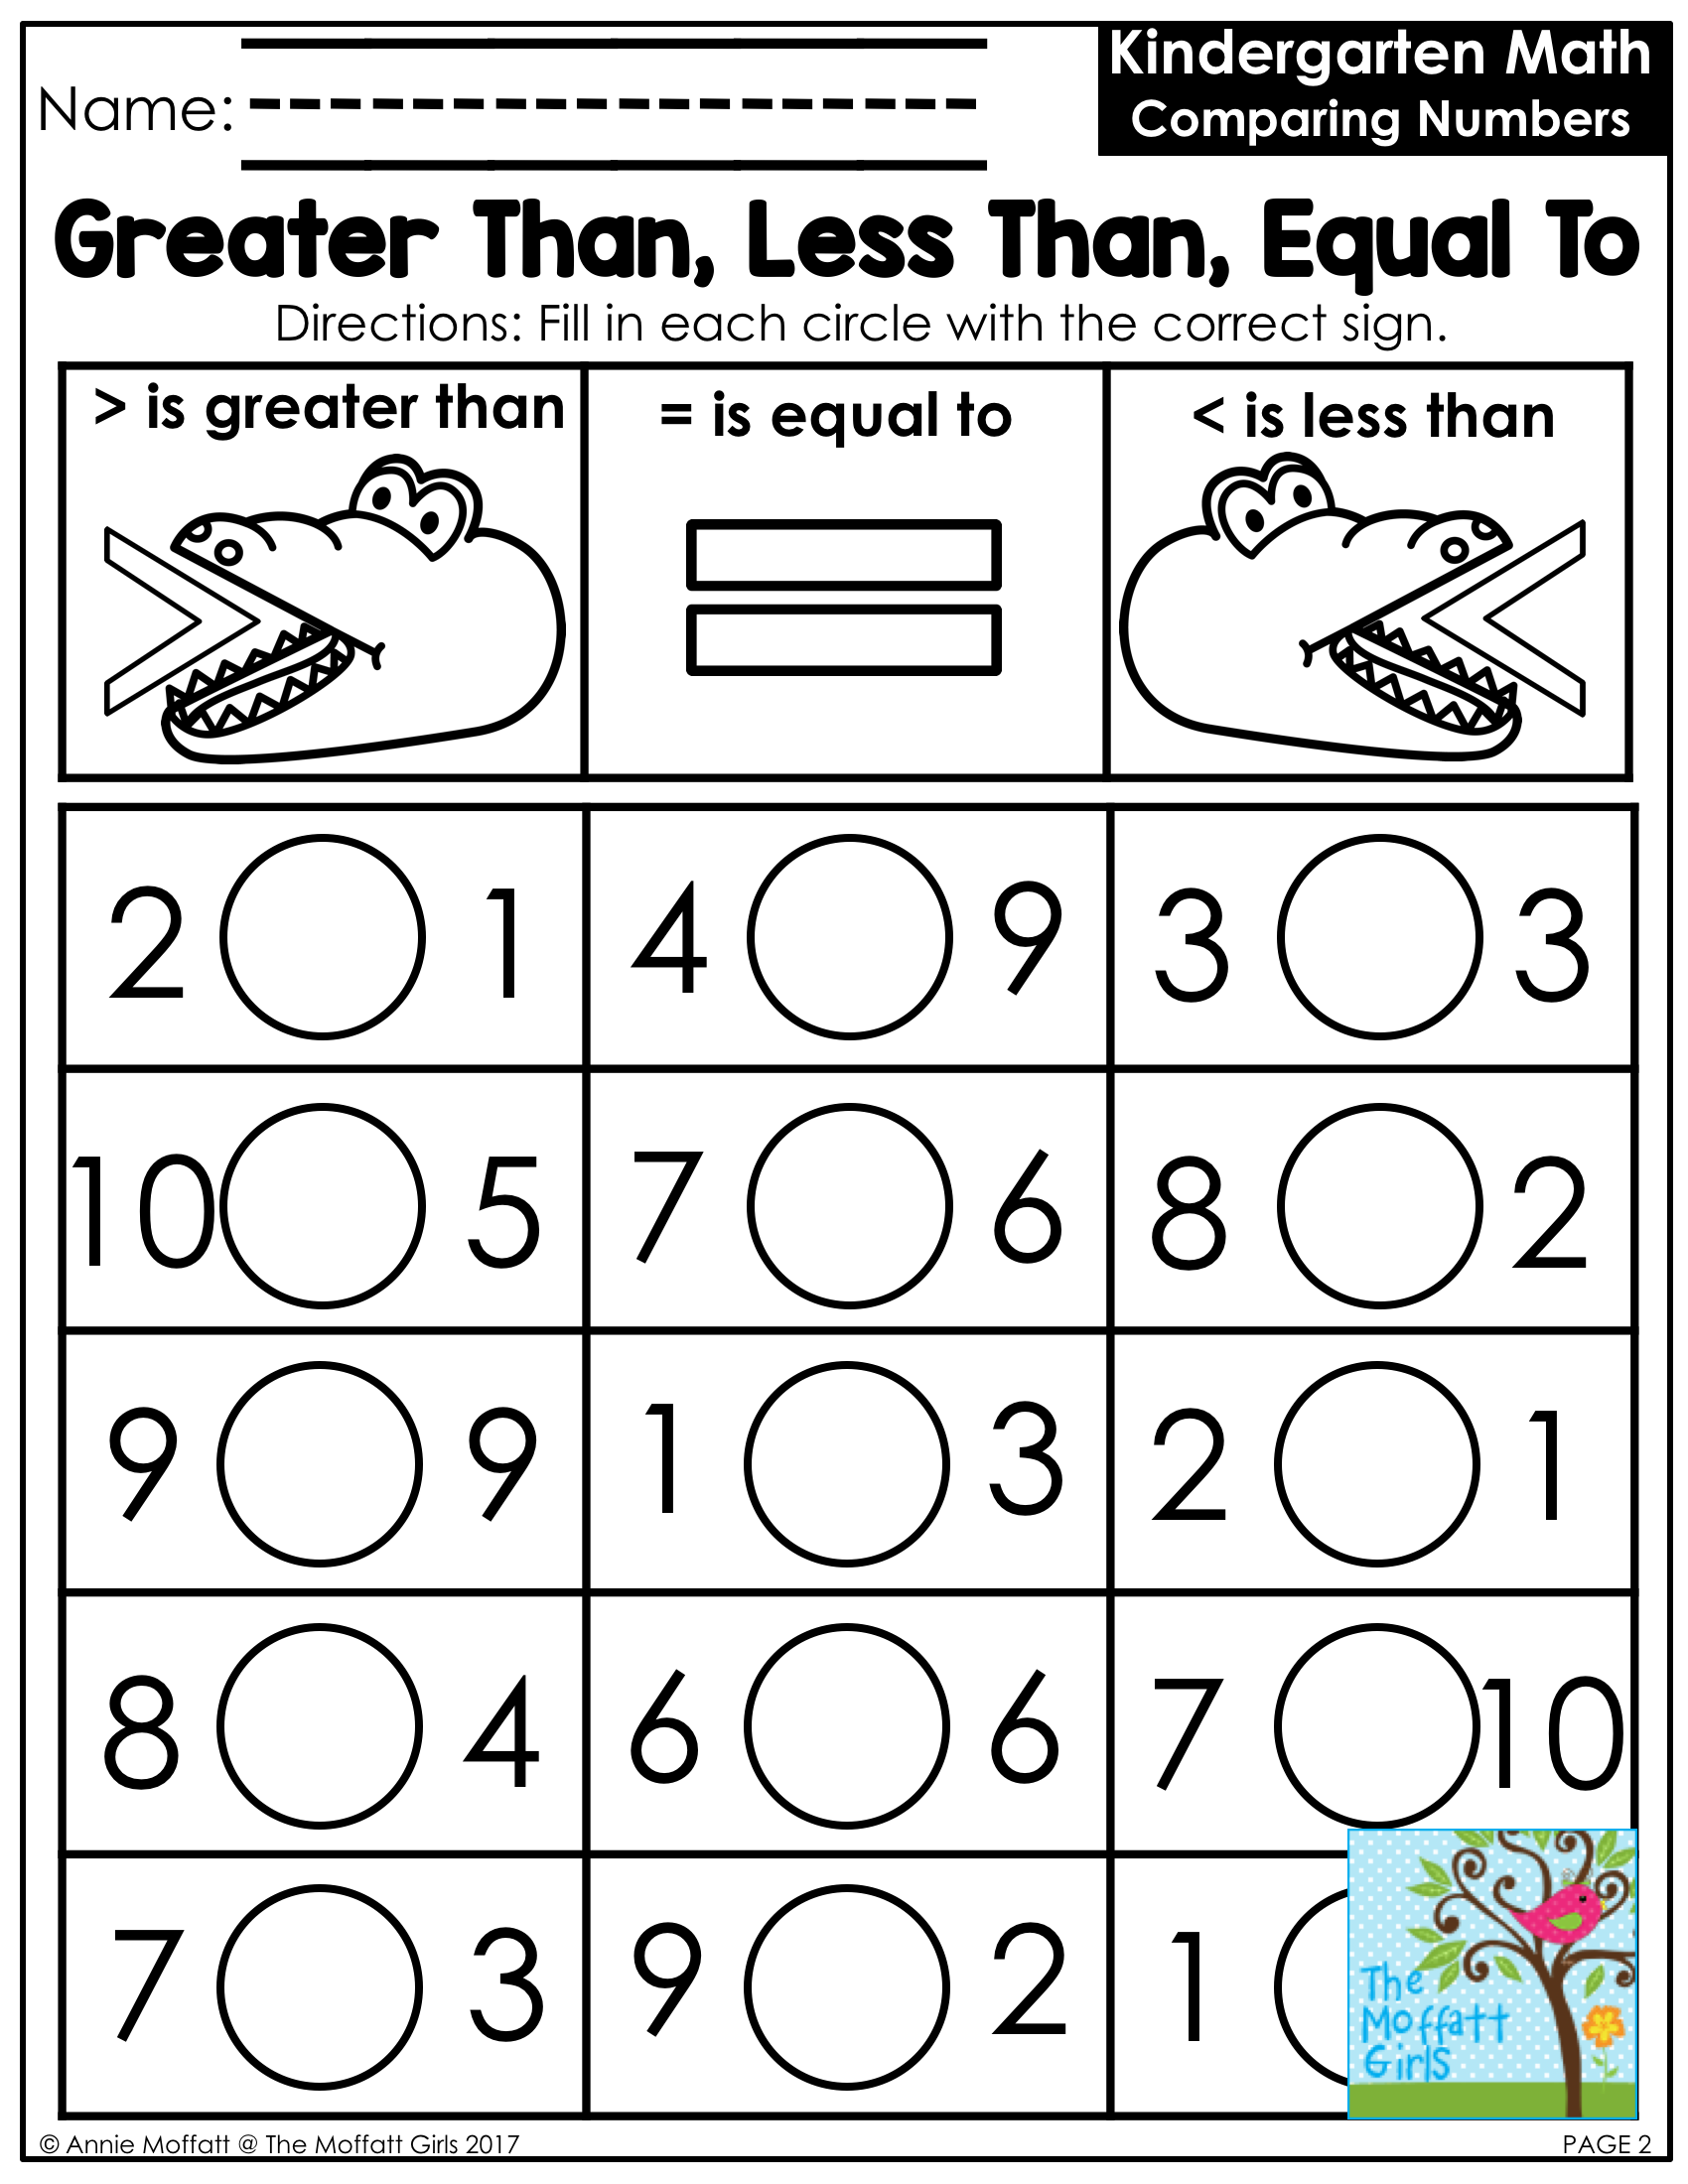 Free Comparing Numbers Worksheets Pictures